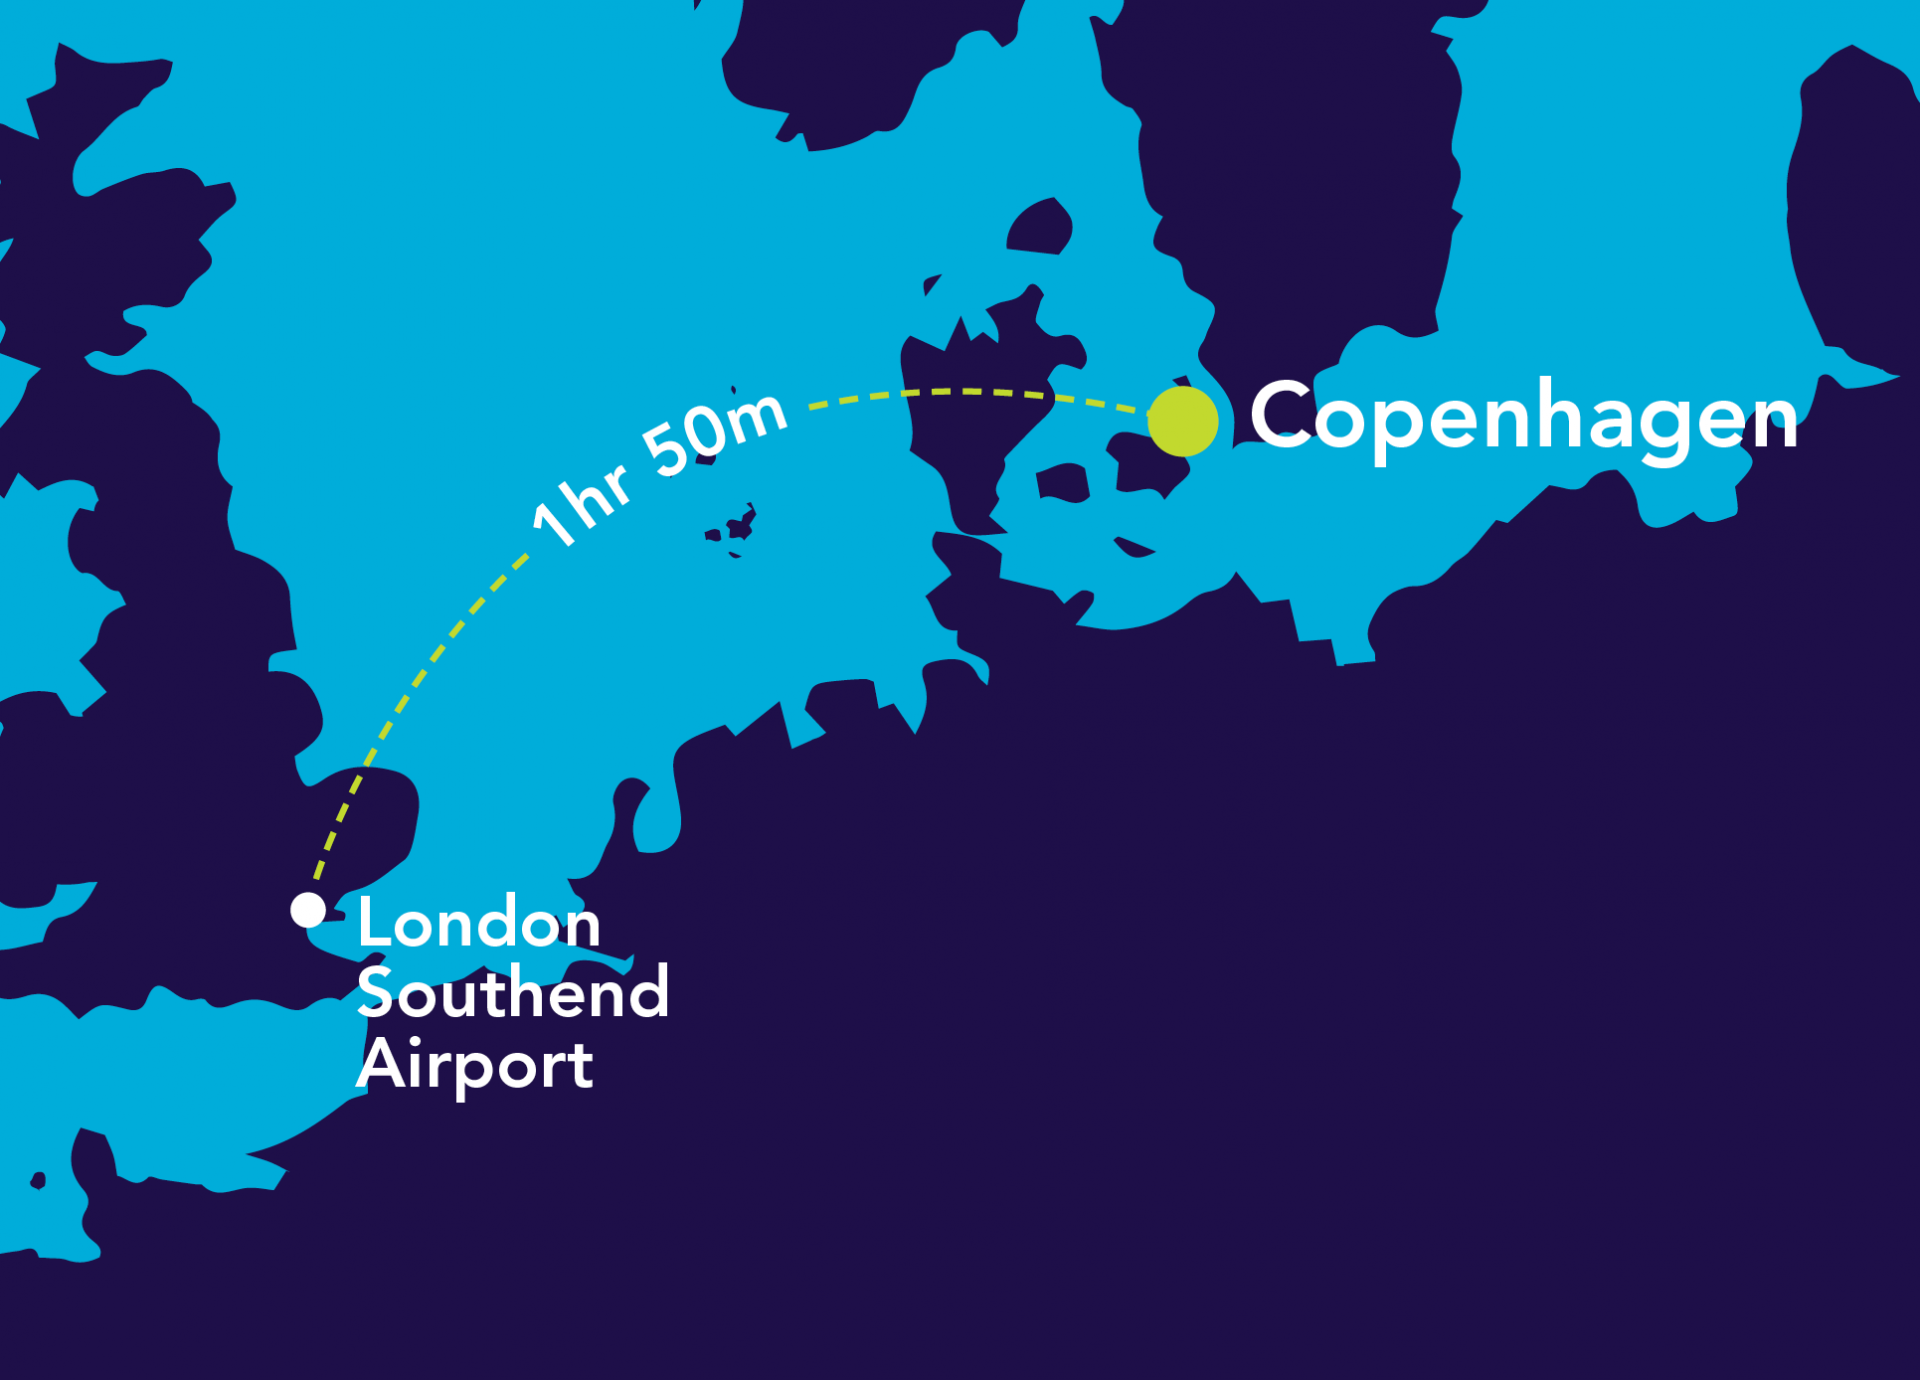 Image of map from London Southend Airport to Copenhagen